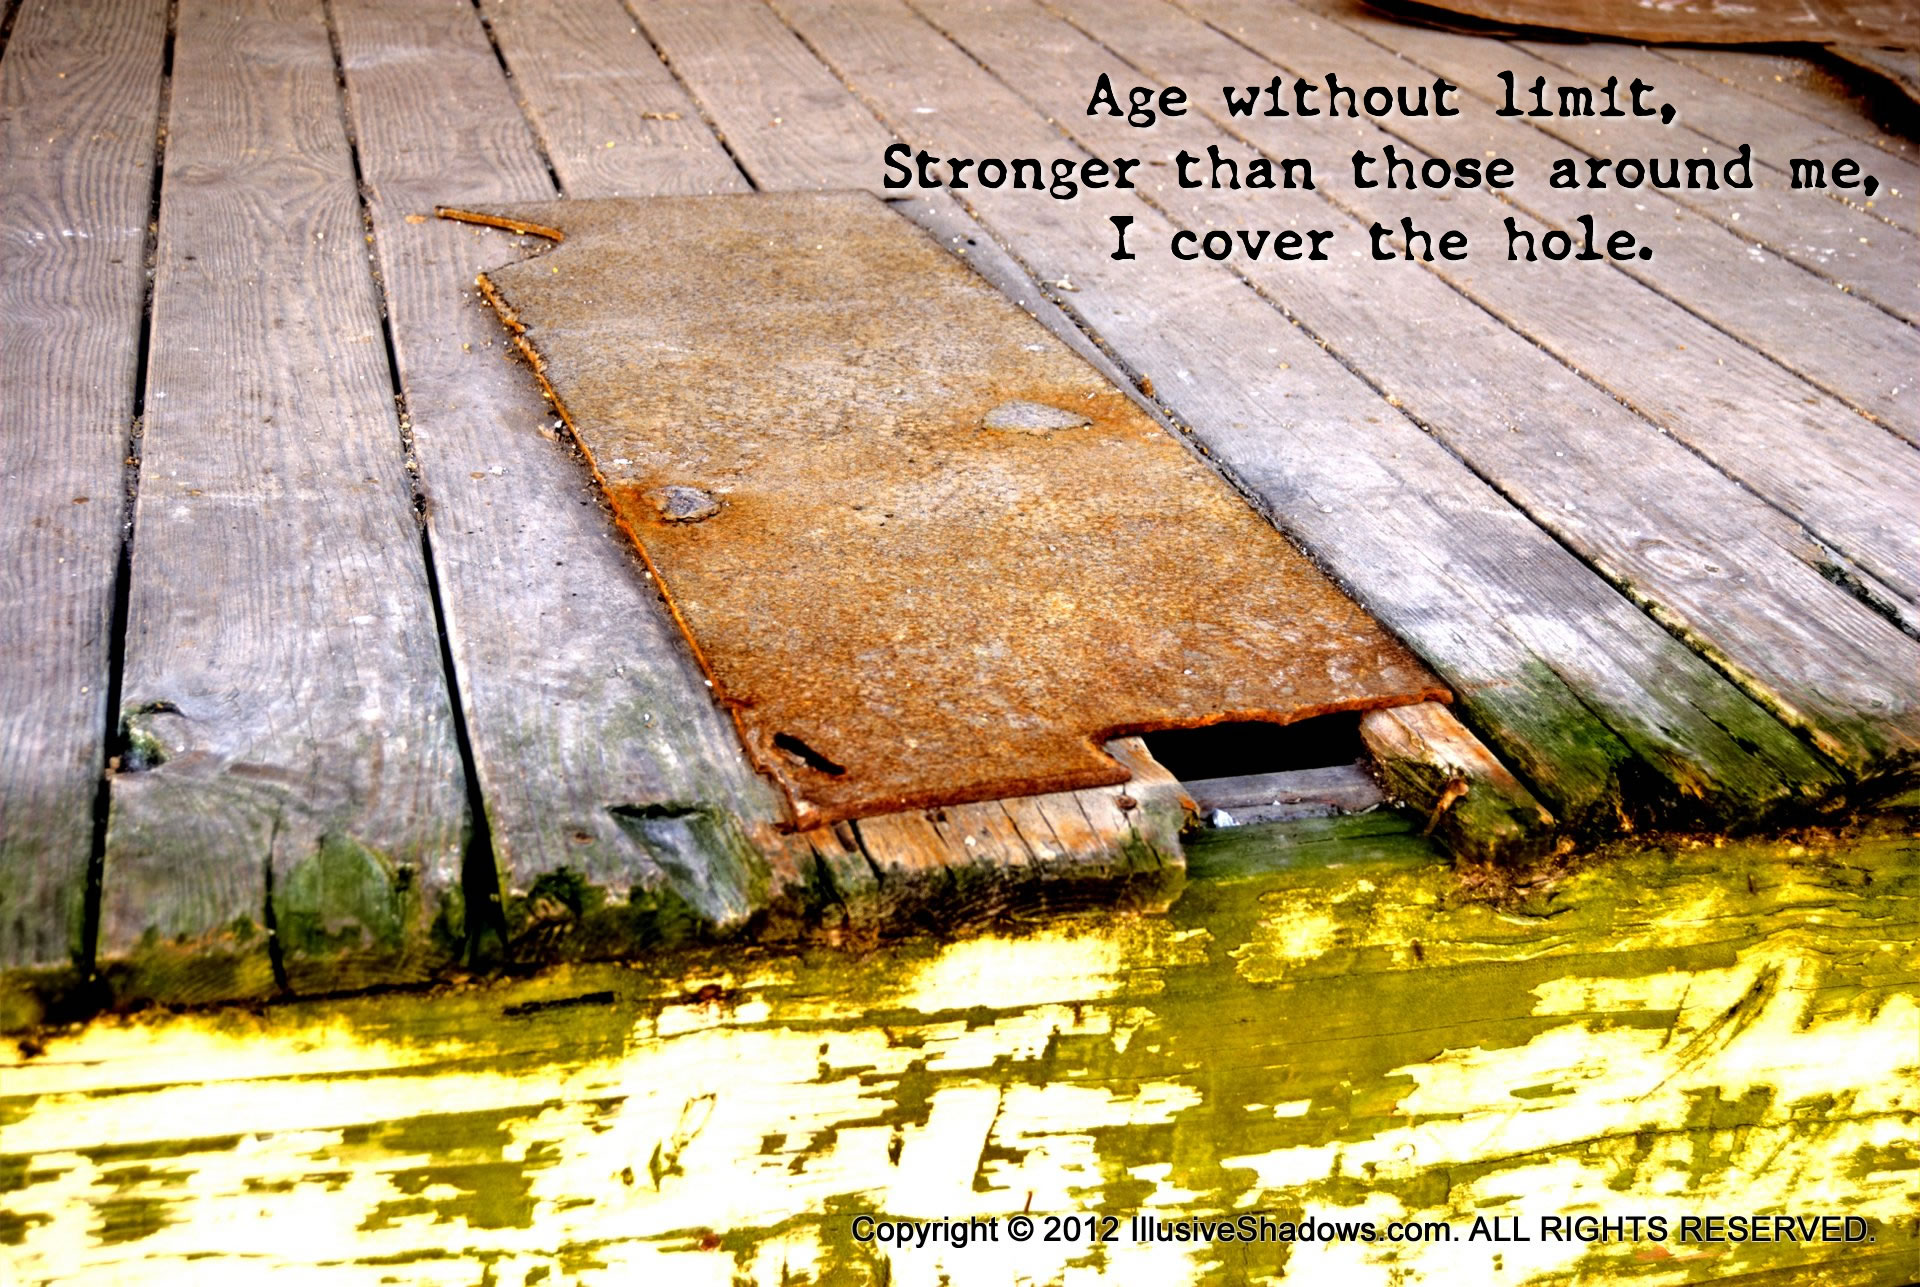 Age without limit, Stronger than those around me, I cover the hole.